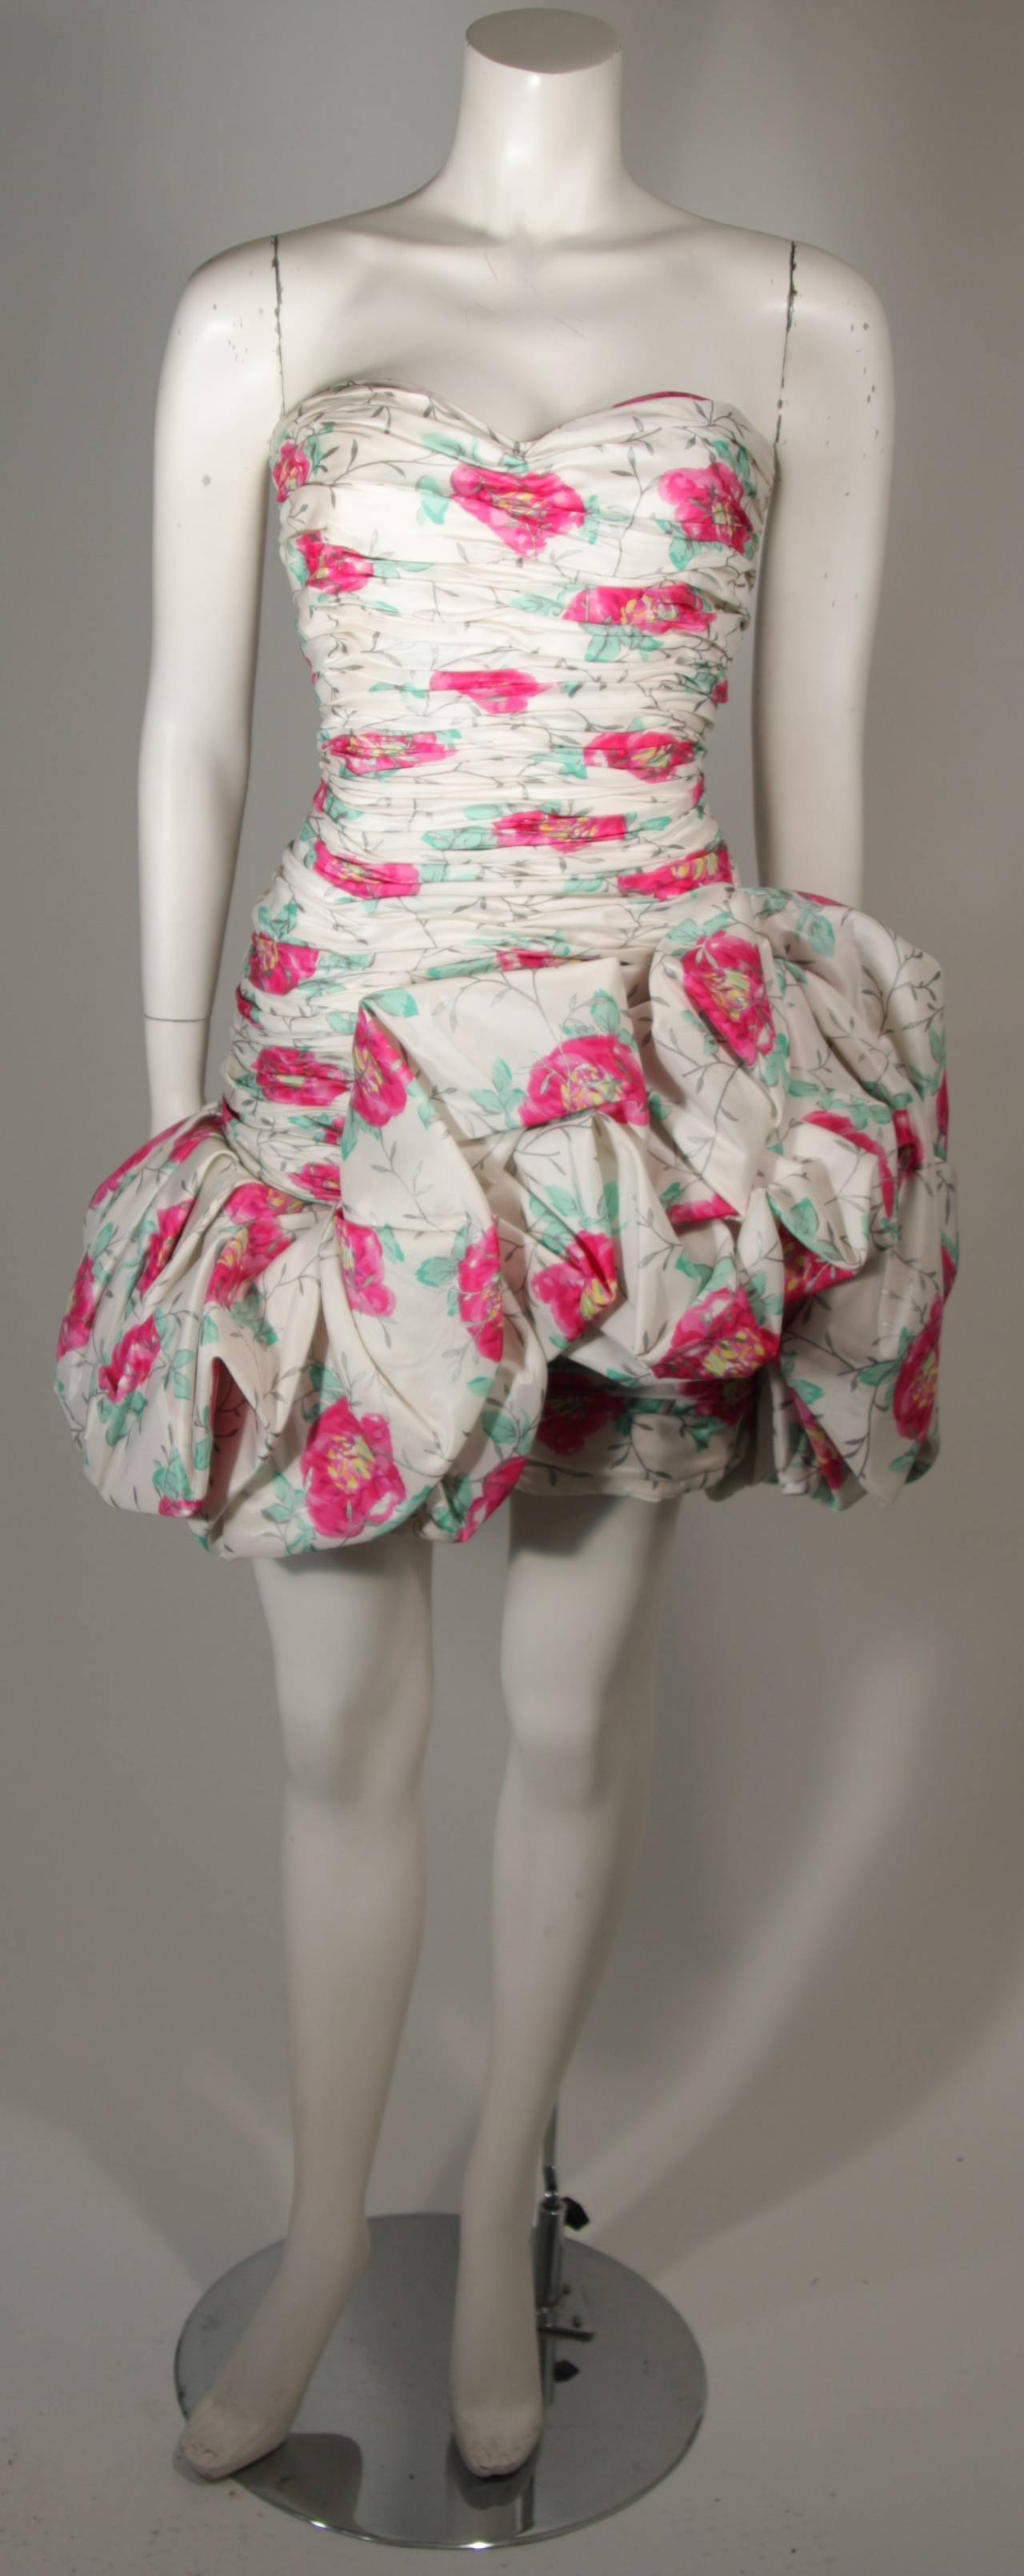 This Ungaro cocktail dress is composed of a white silk taffeta with a floral design of pink and green with silver branches. This cocktail dress features volume at the skirt and a gathered bodice with boning at the sides. There is a center back